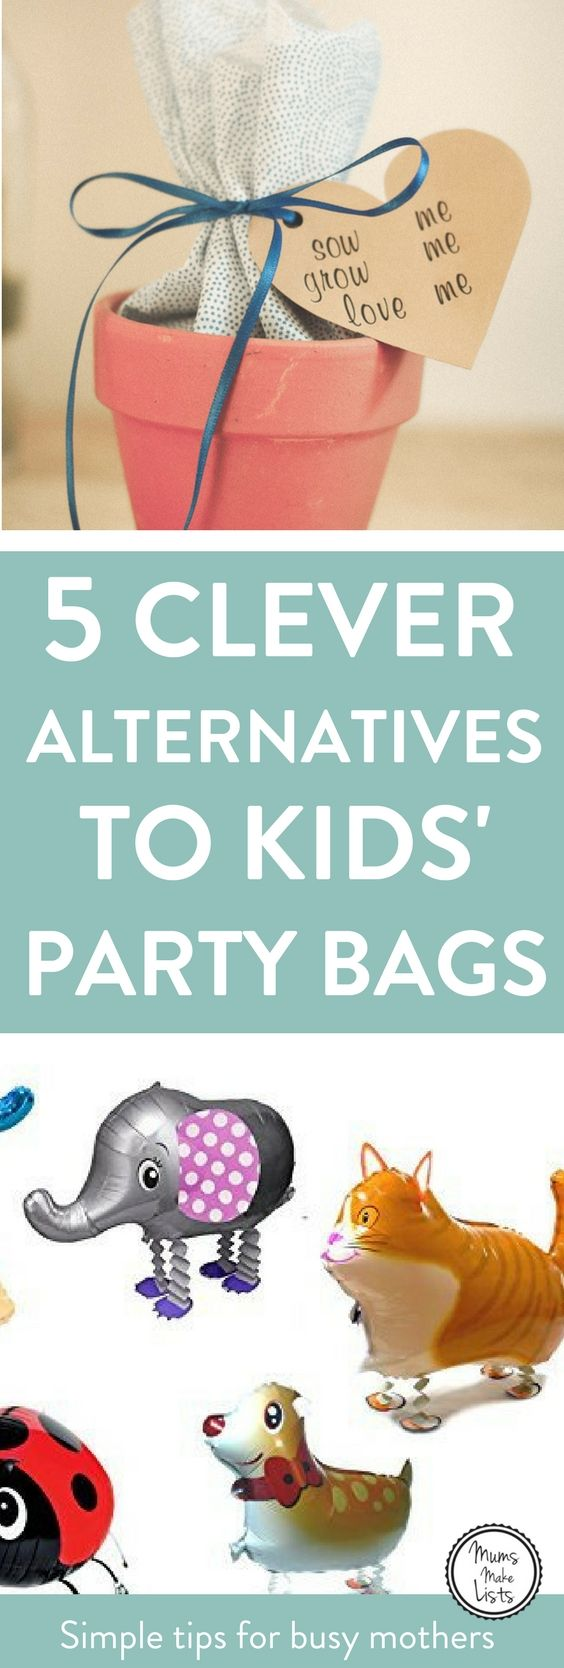 Party Bag Favours Clever Alternative Kids Bags